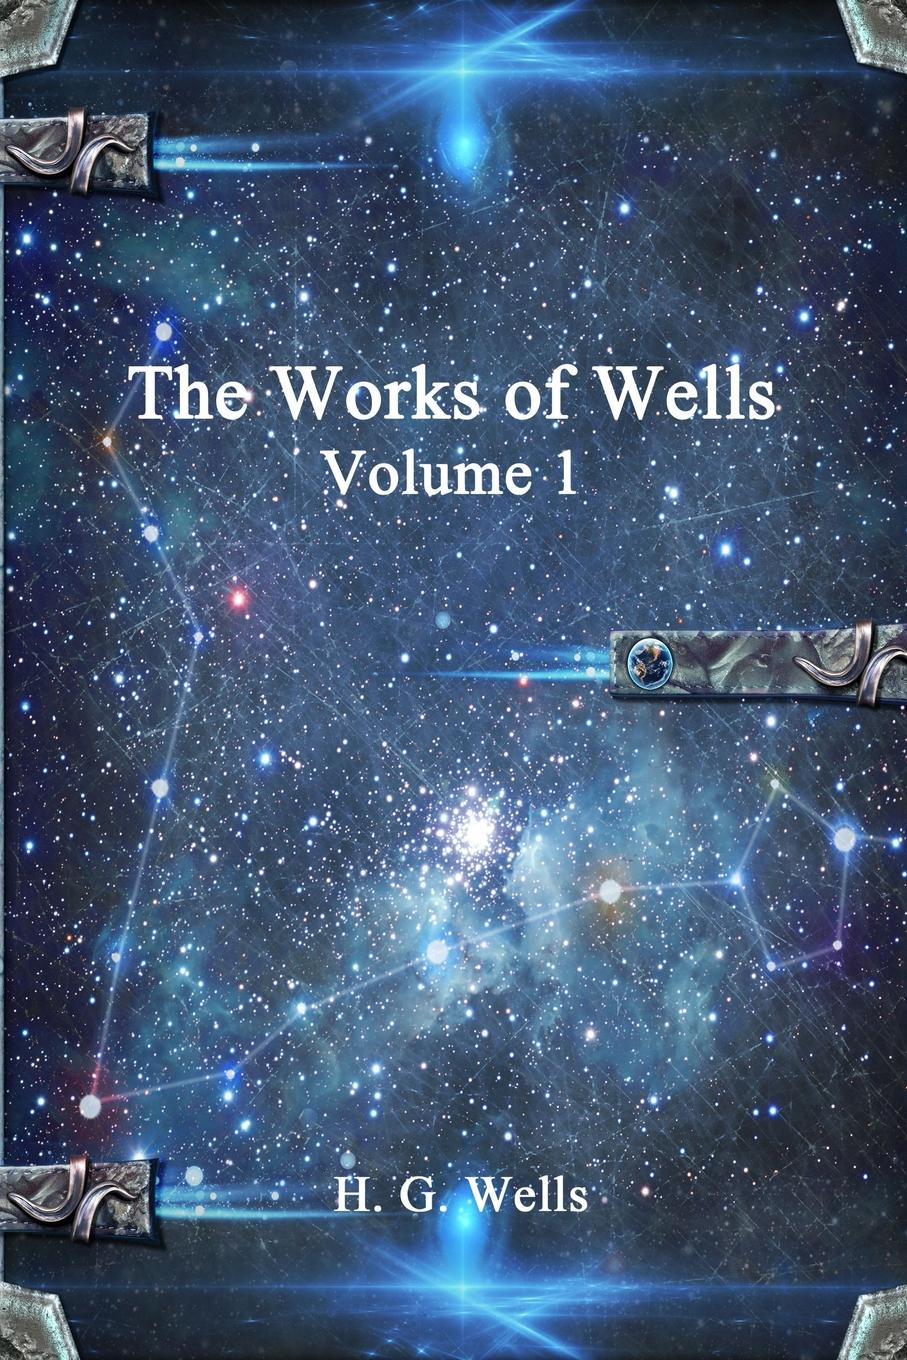 H. G. Wells The Works of Wells h g wells